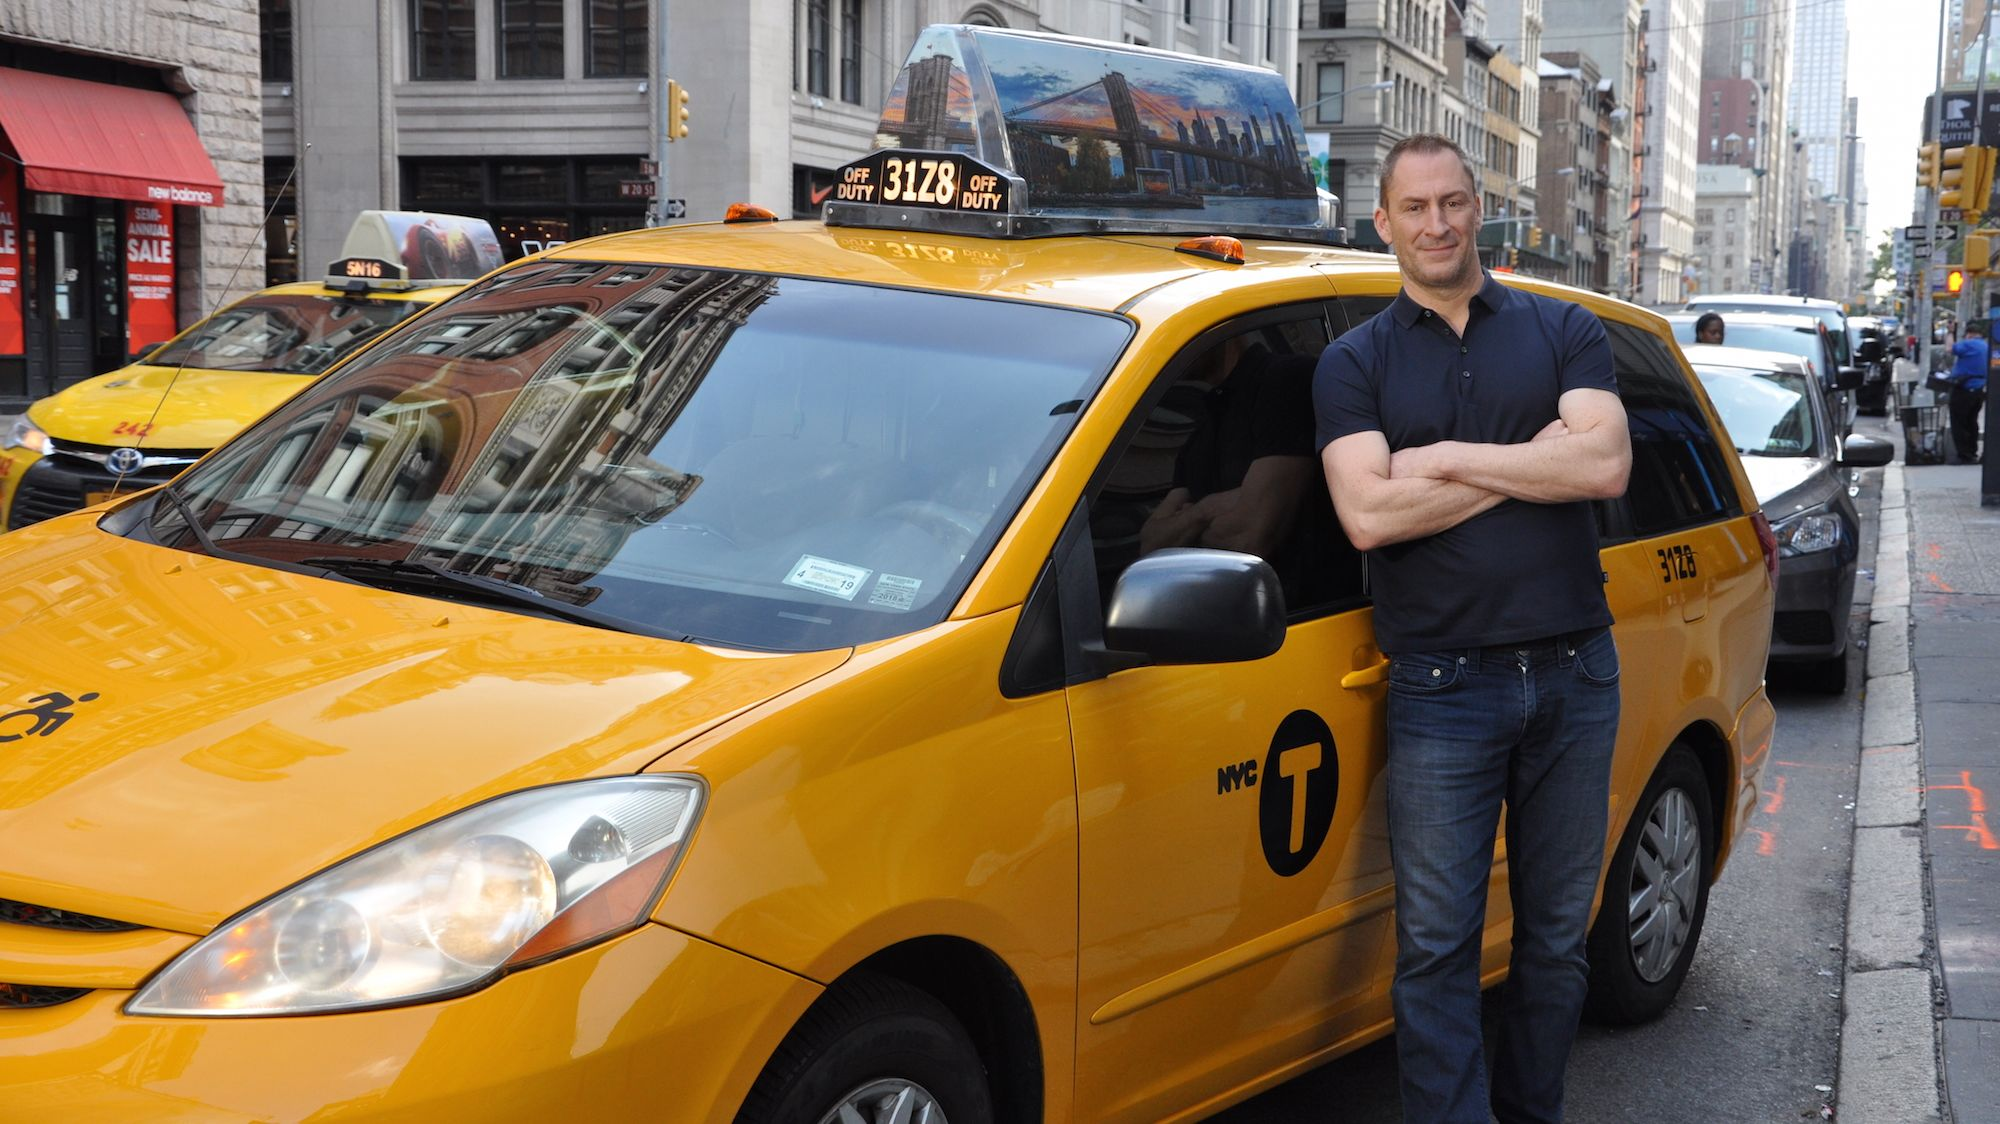 11 Fast Facts About Cash Cab | Mental Floss